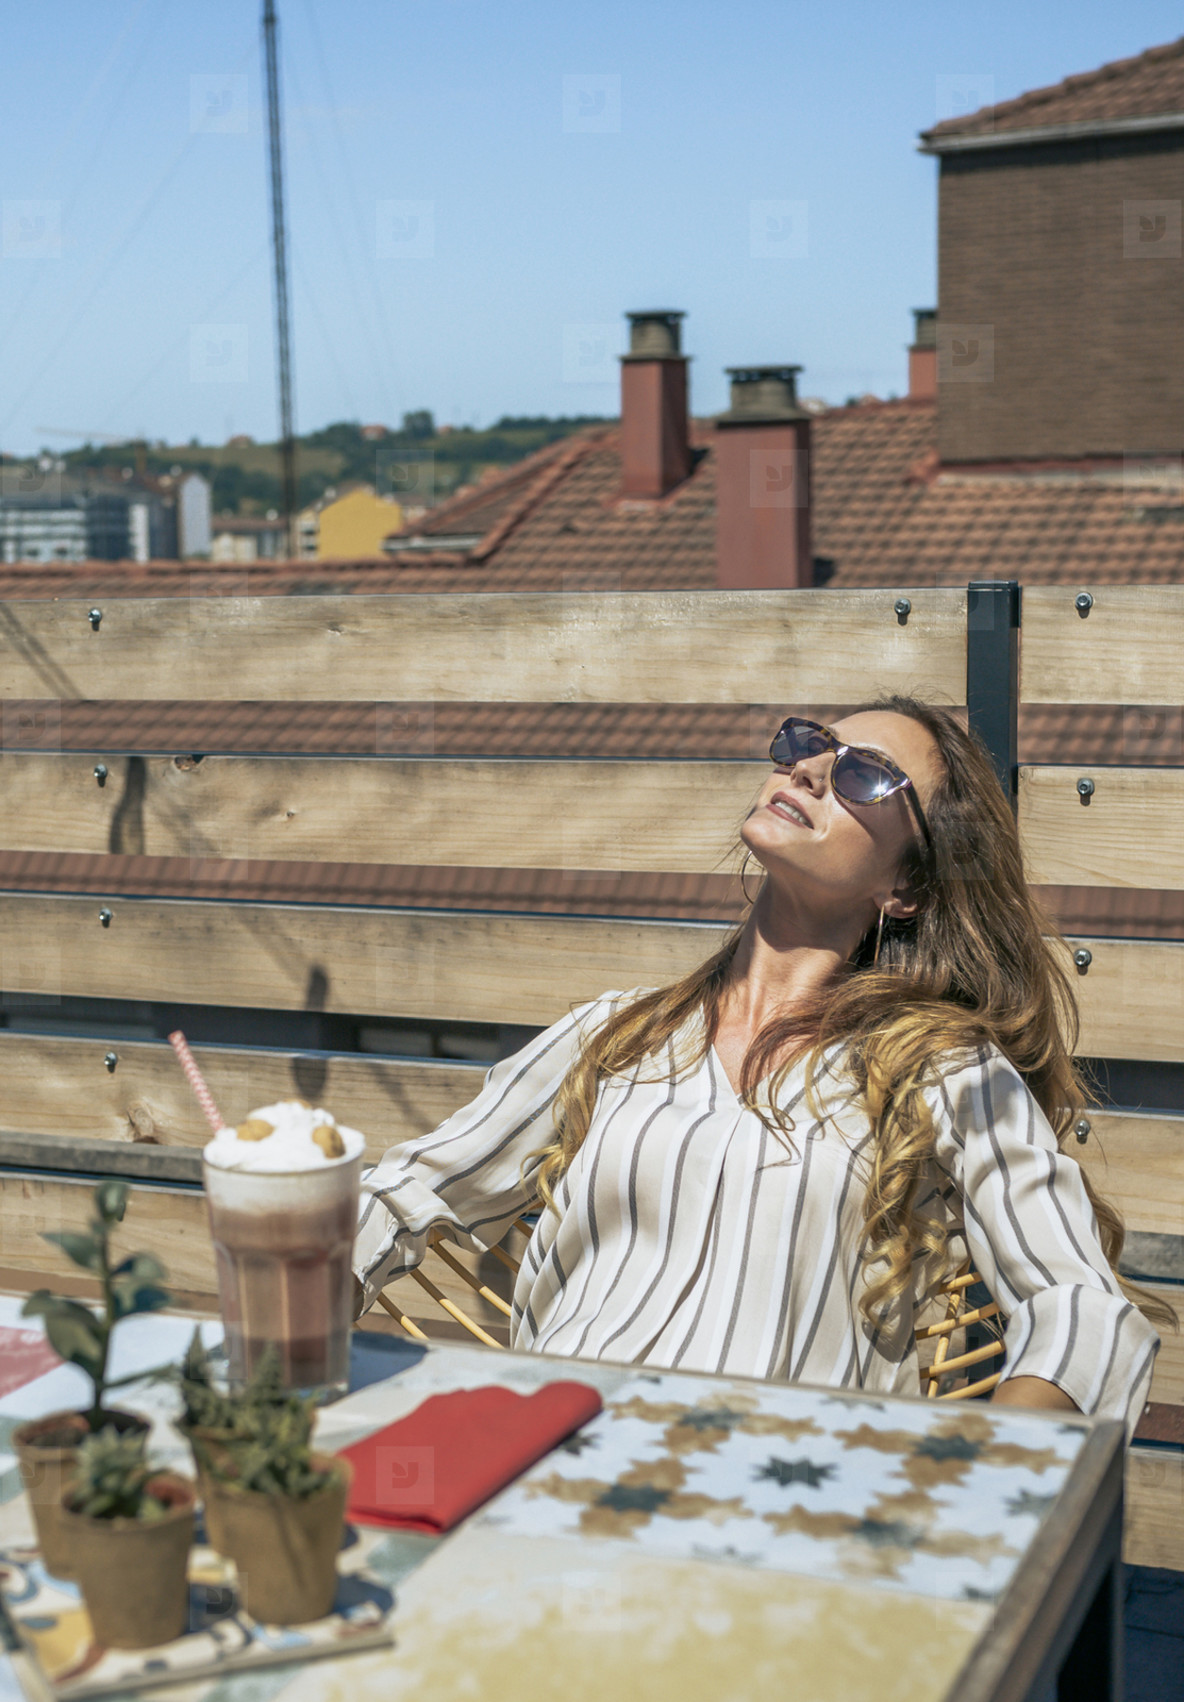 Woman with sunglasses sunbathing on the terrace